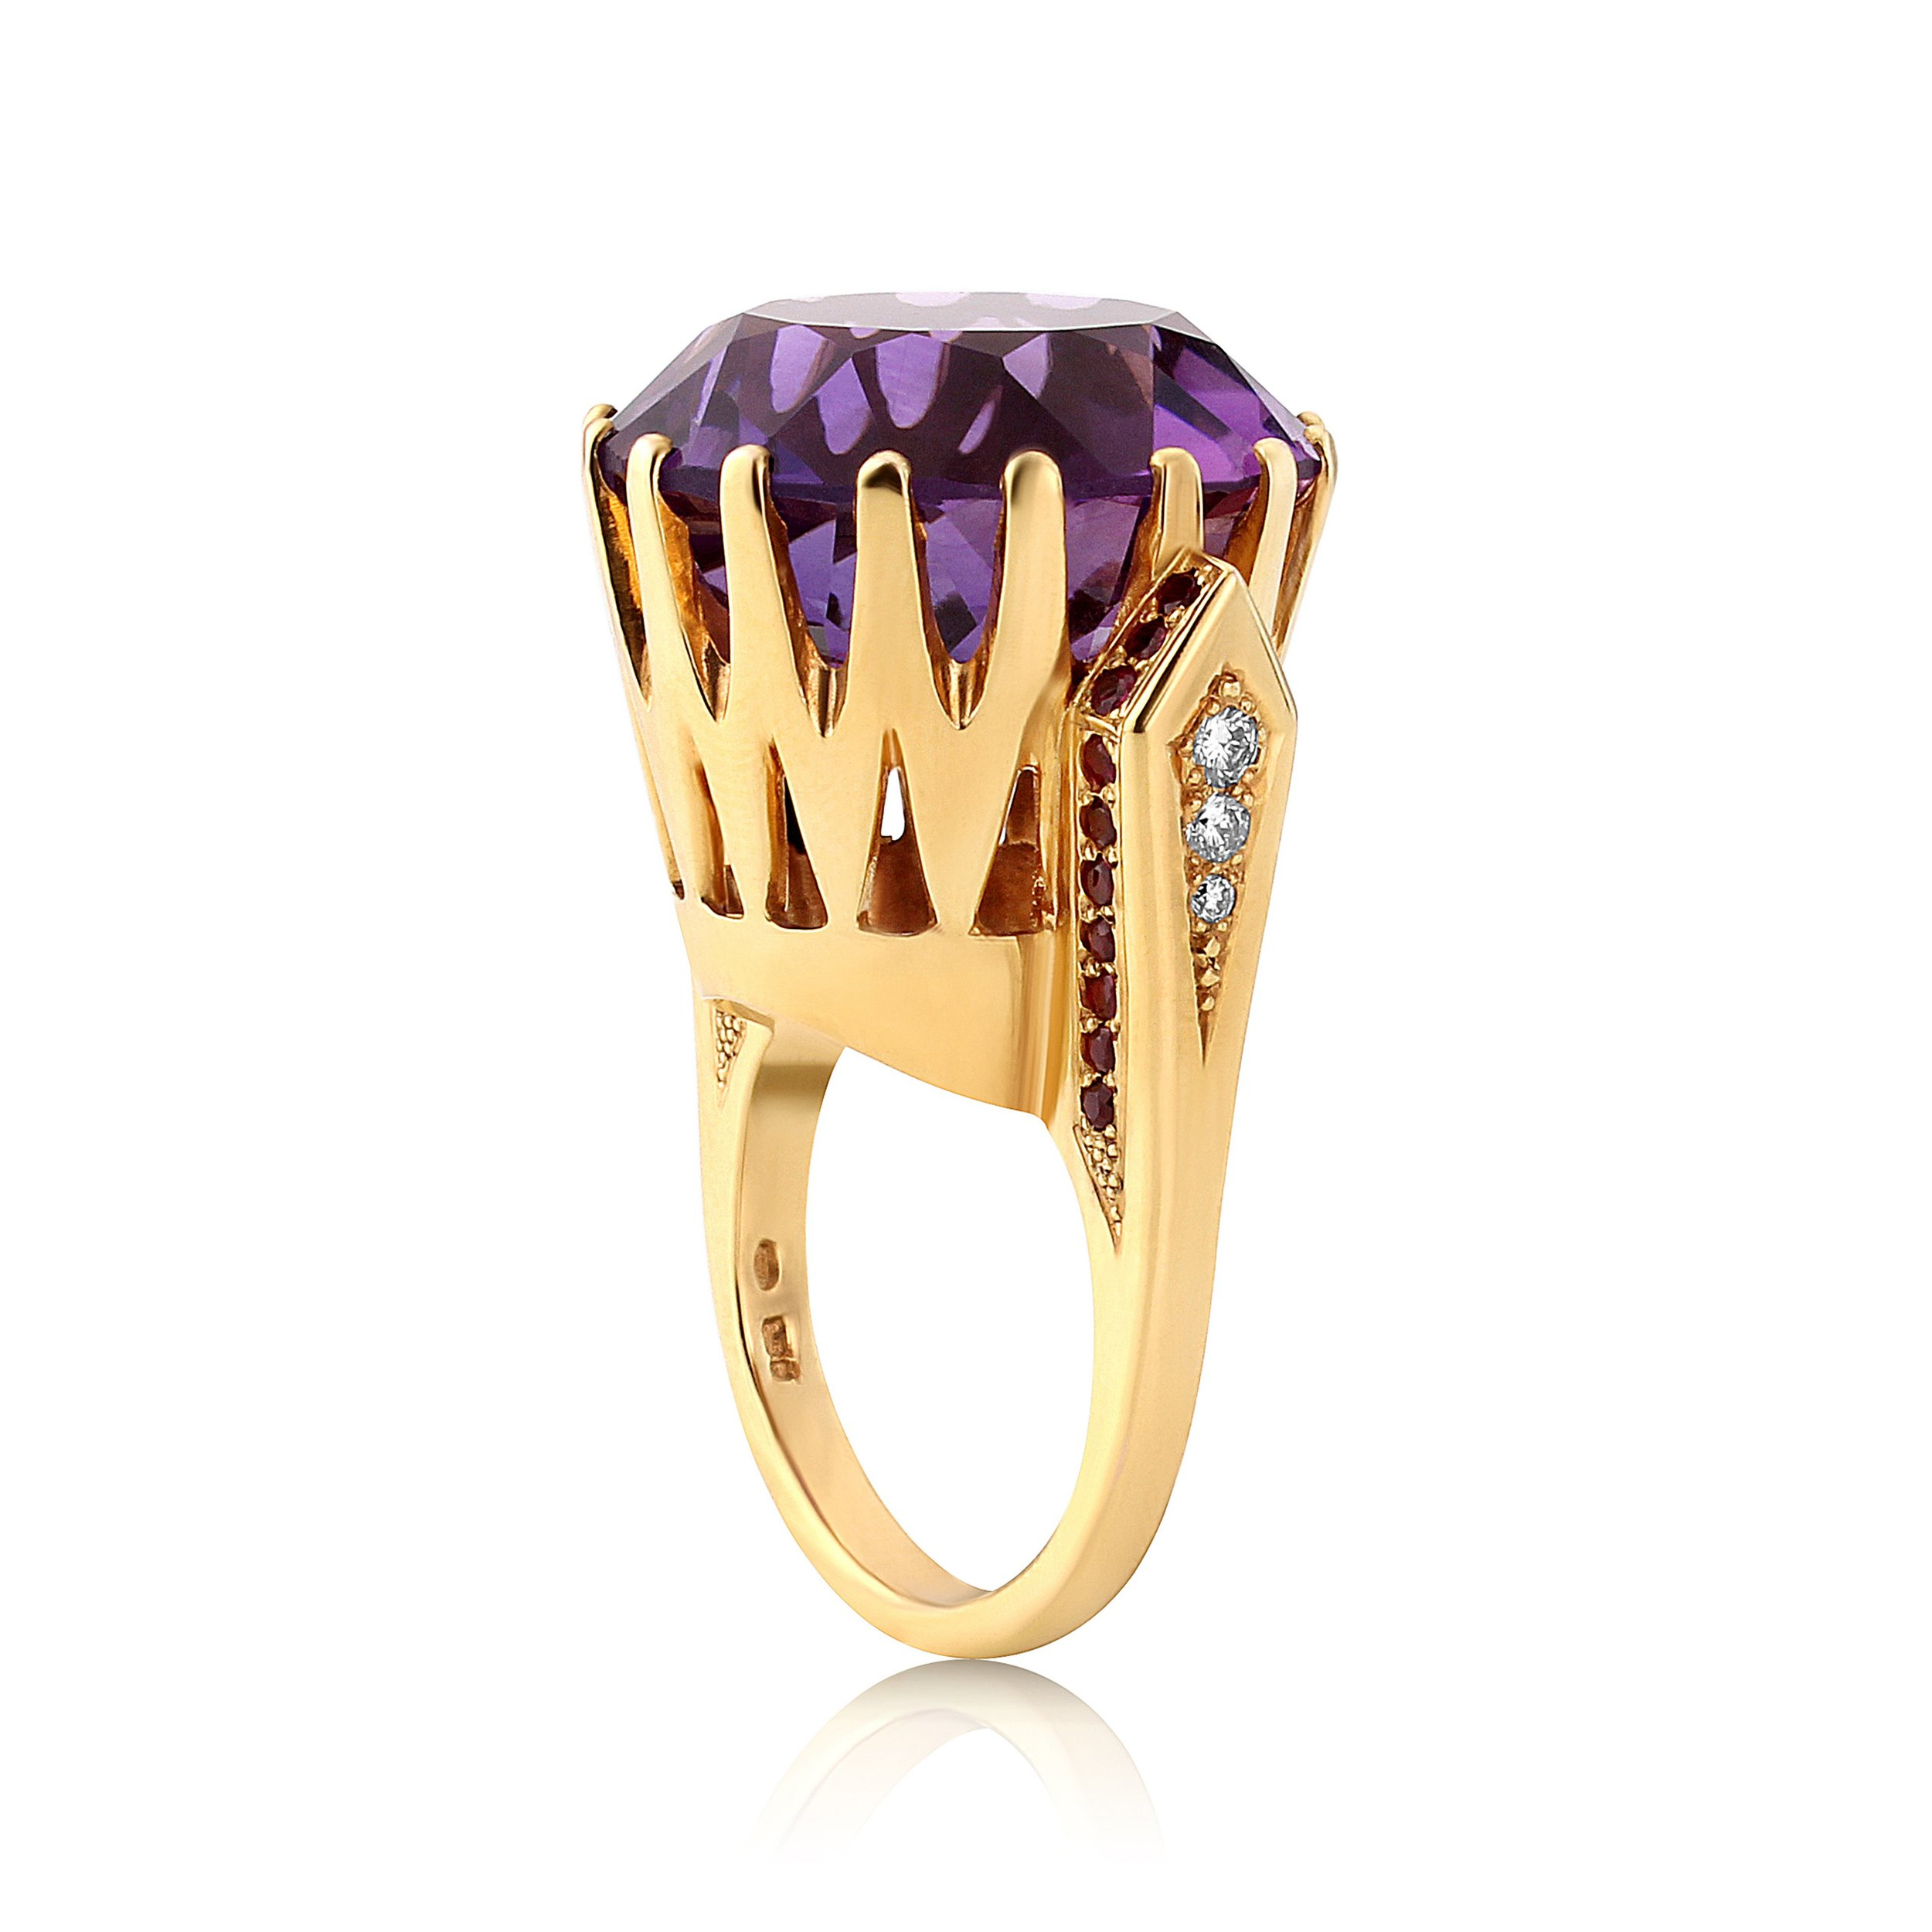 A stunning 36ct amethyst diamond and ruby ring in a over the top design ,this ring is a dress ring and not subtle1